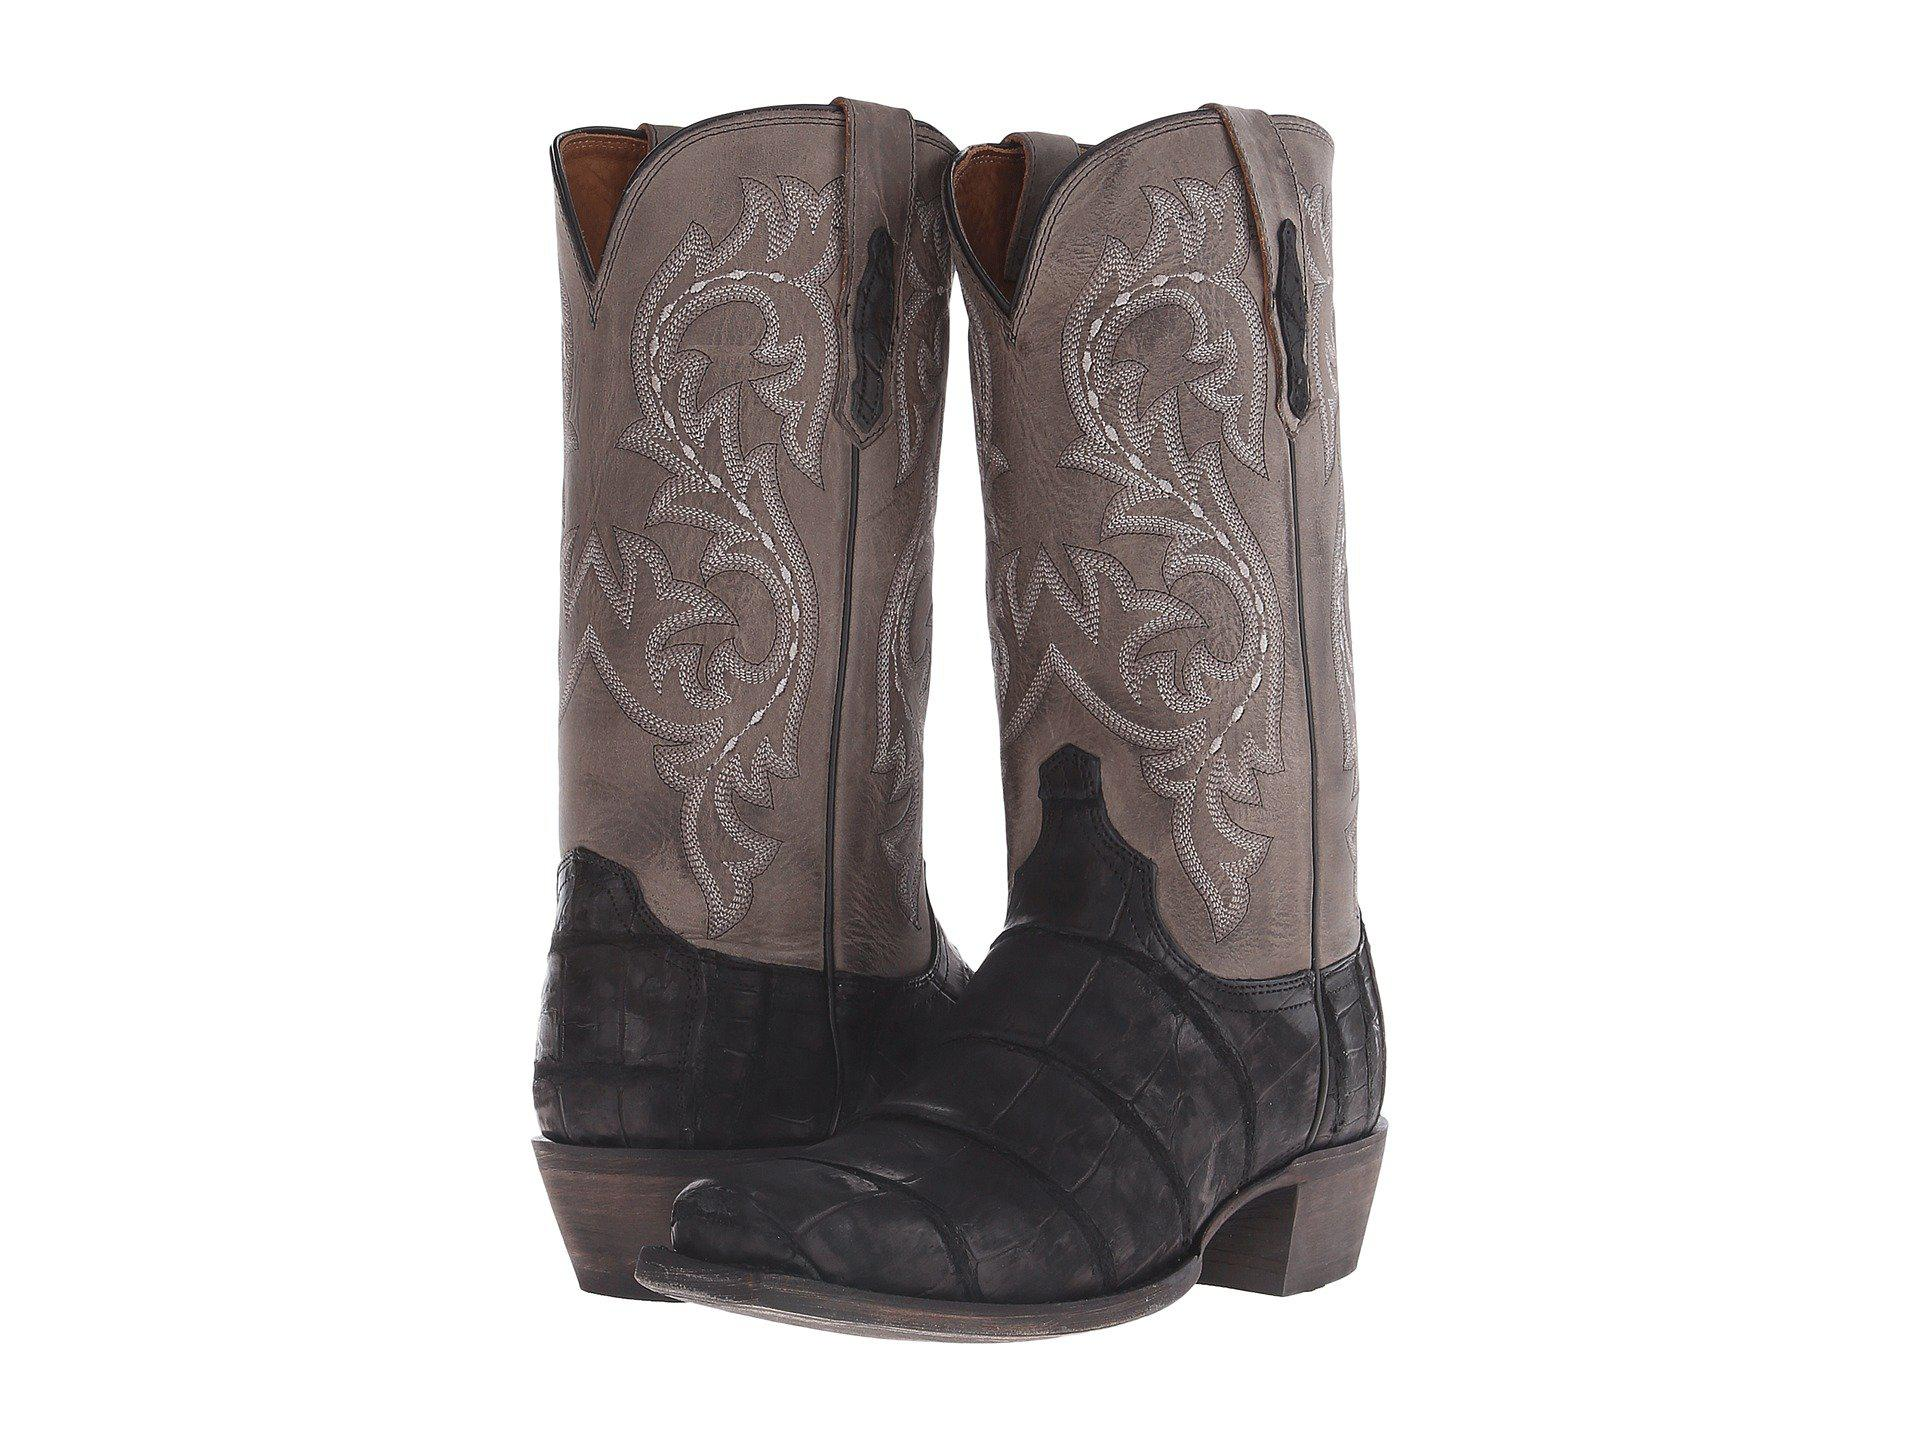 from Kash dating lucchese boots